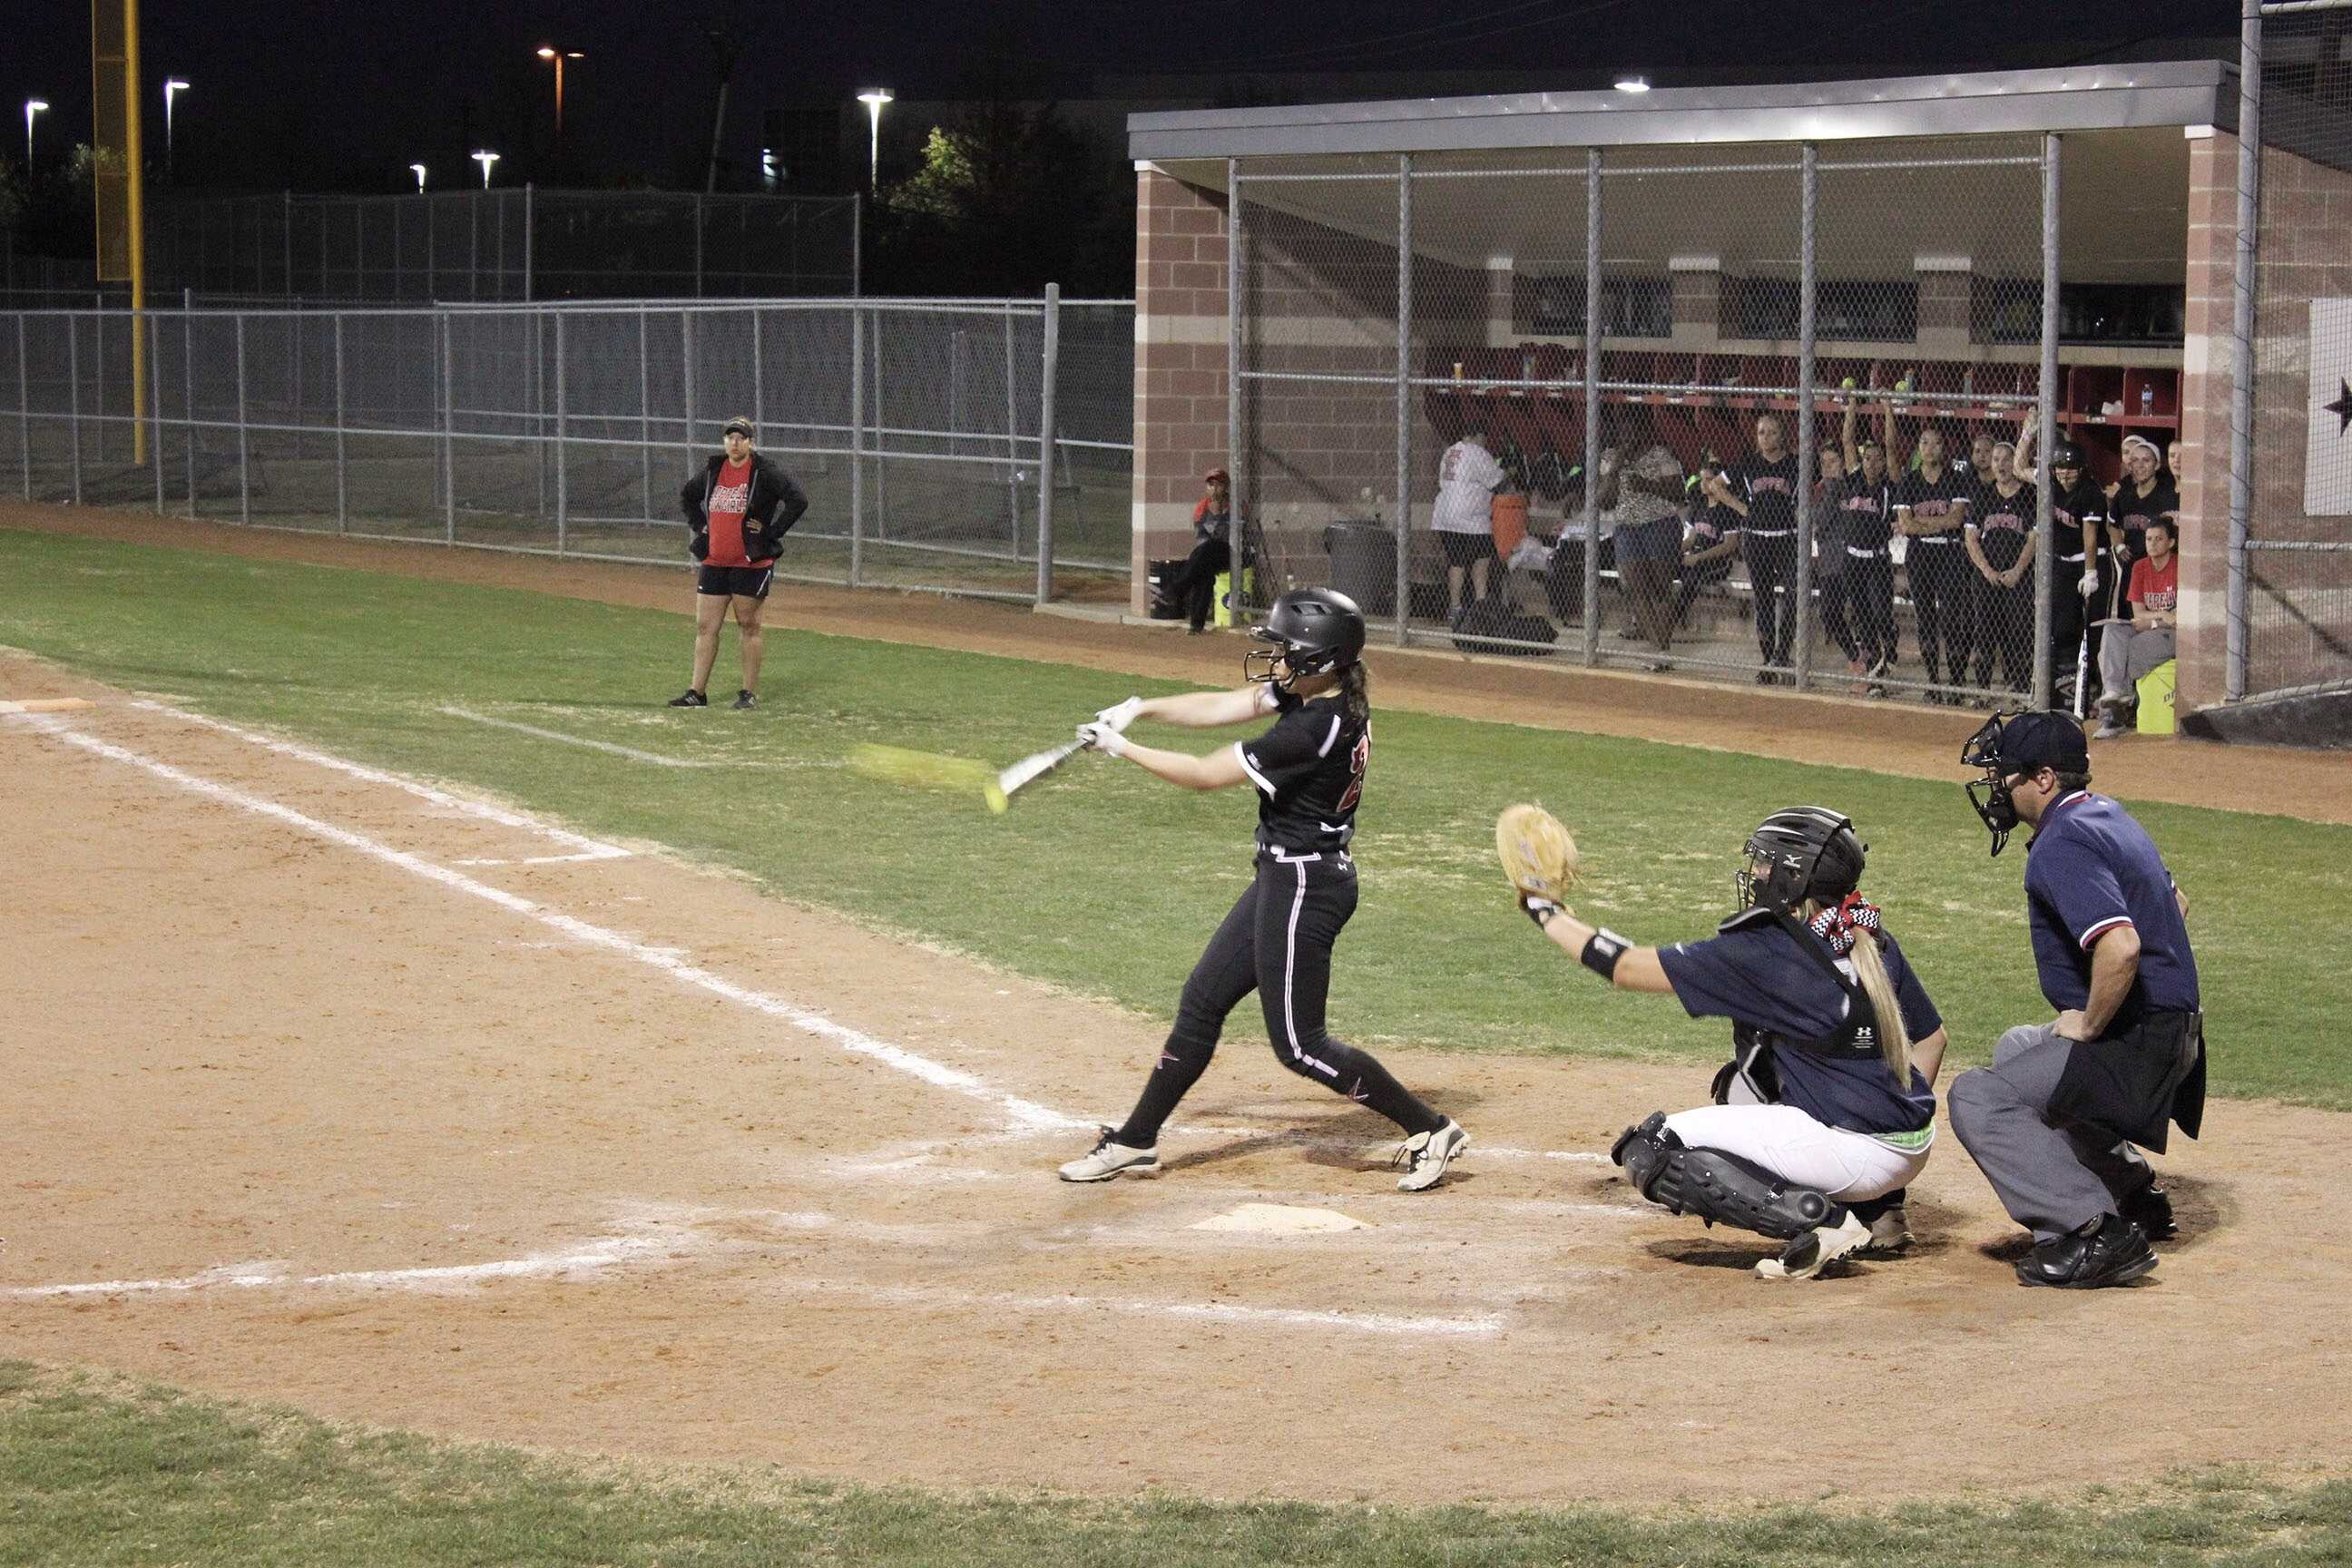 Sophomore outfielder Ali Gentry hits hard against rival Lewisville. Photo by Mark Slette.